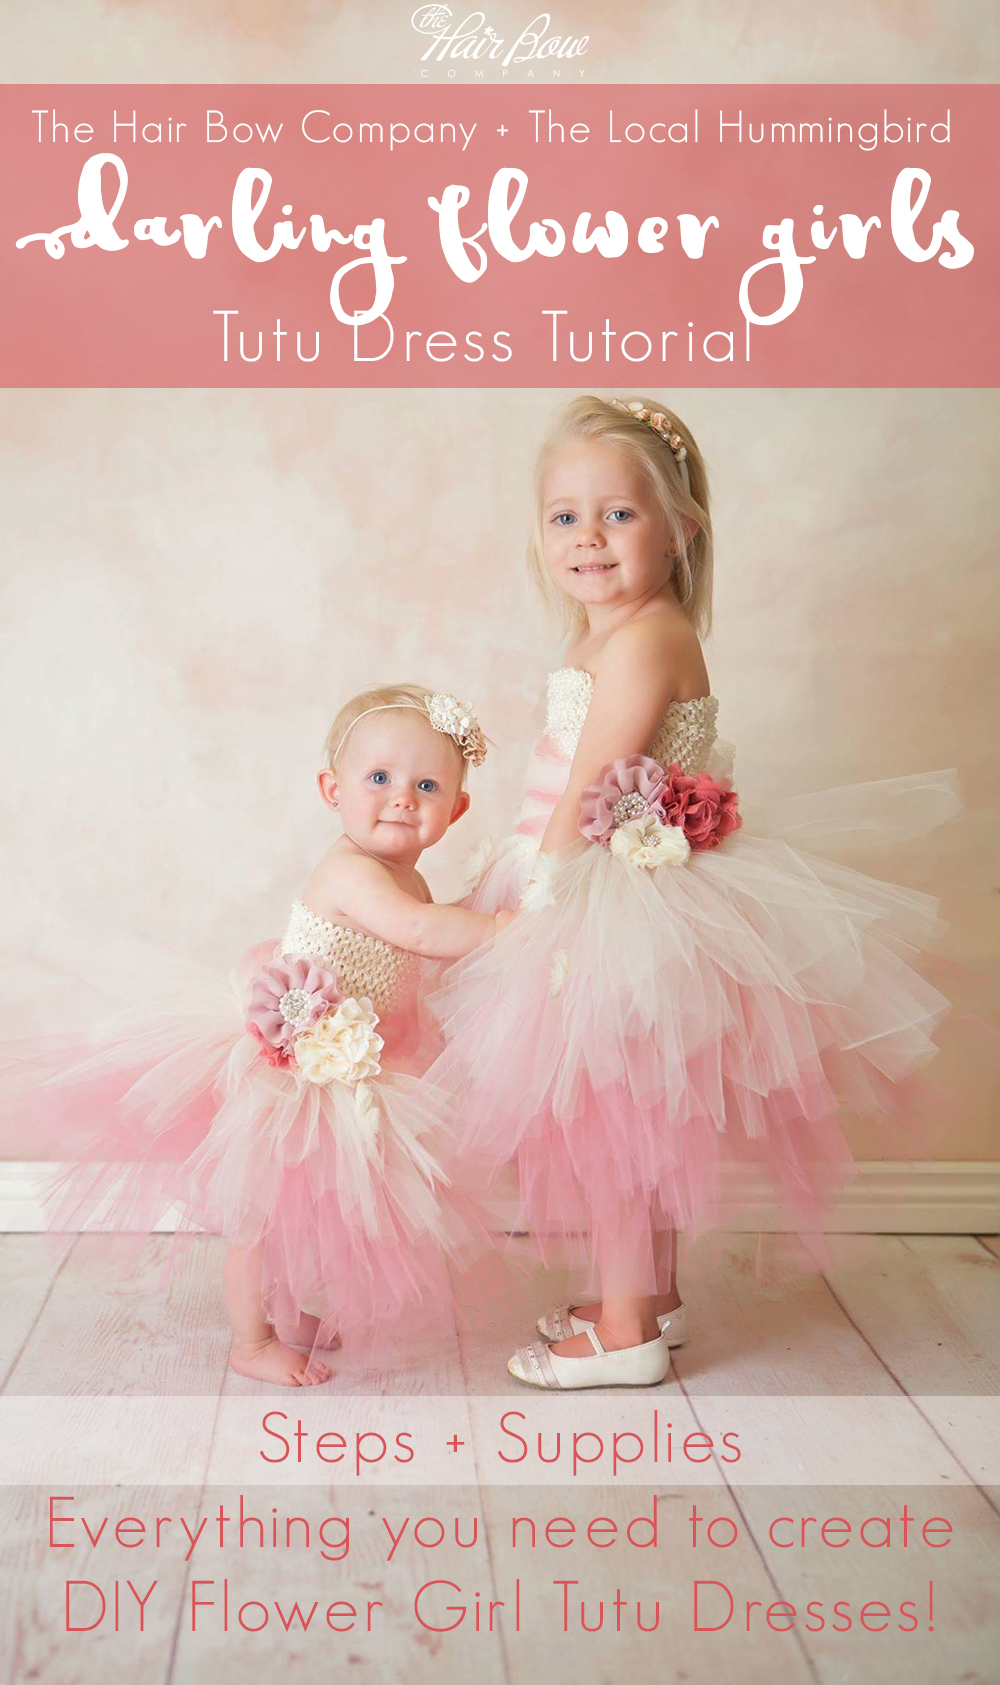 peacock tutu dress tutorial